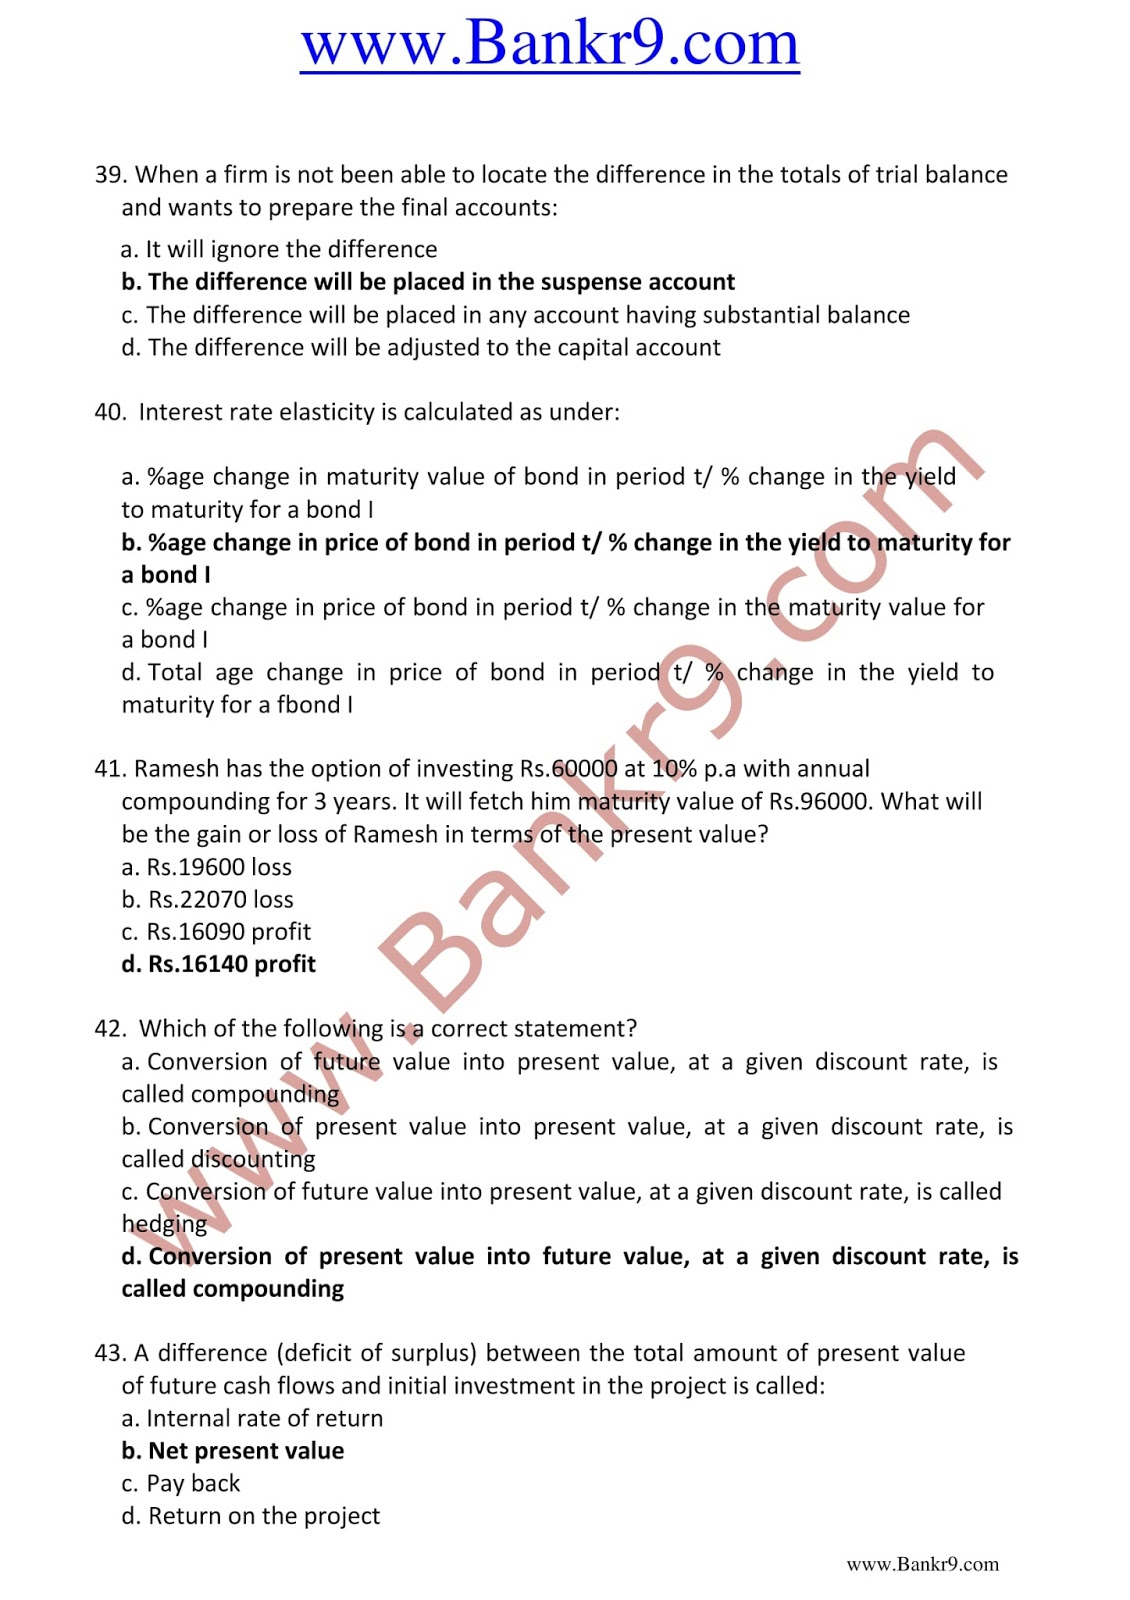 JAIIB 2nd Paper Accounting and Finance for Bankers Previous Year Question Papers Based on Memory